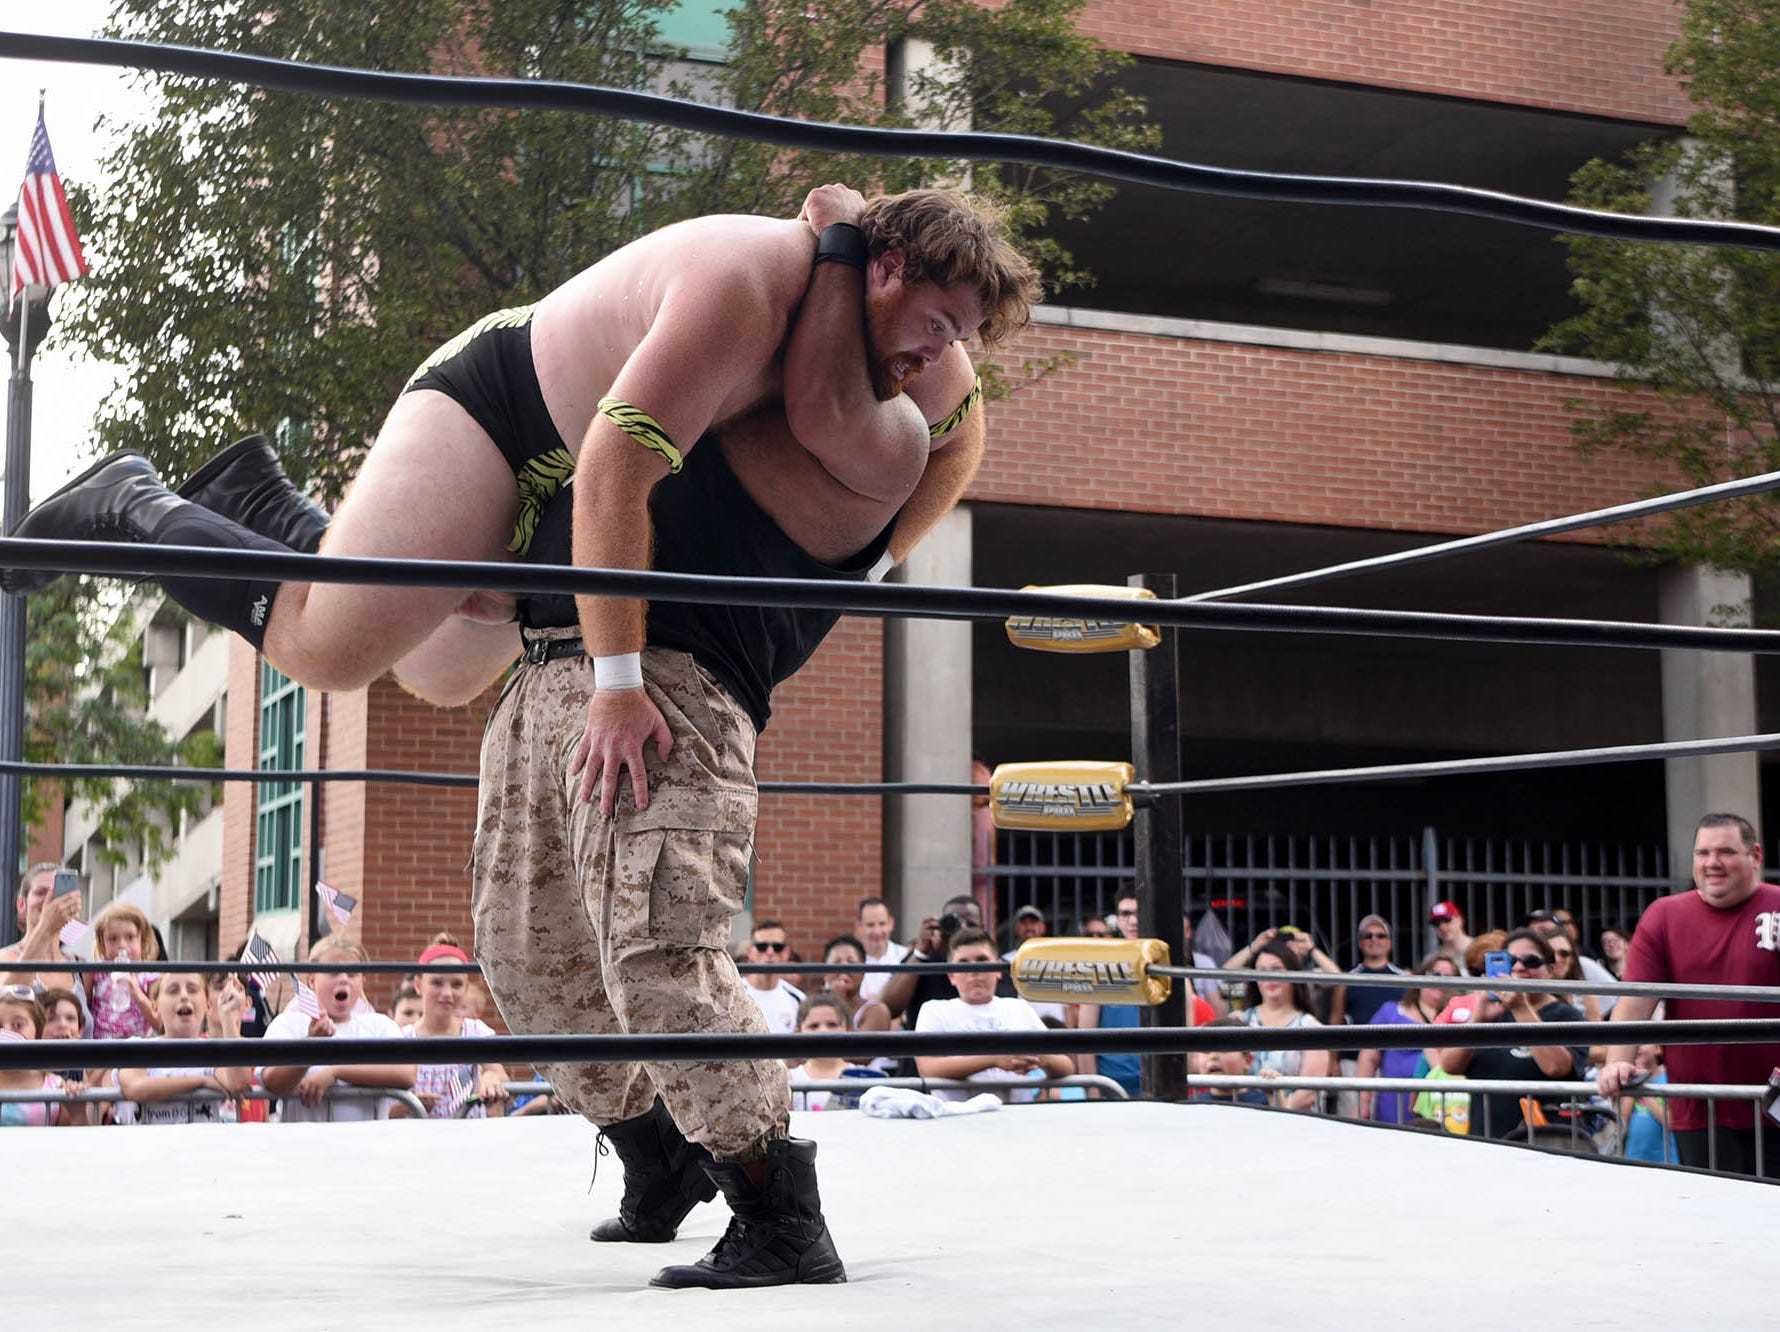 The 43rd annual Rutherford Labor Day Street Fair took place along Park Ave. in downtown Rutherford on Monday, September 3, 2018. Beefcake Charlie is lifted of the ground in a hold by Adam Payne during their match on Ames Ave. Payne won the match.